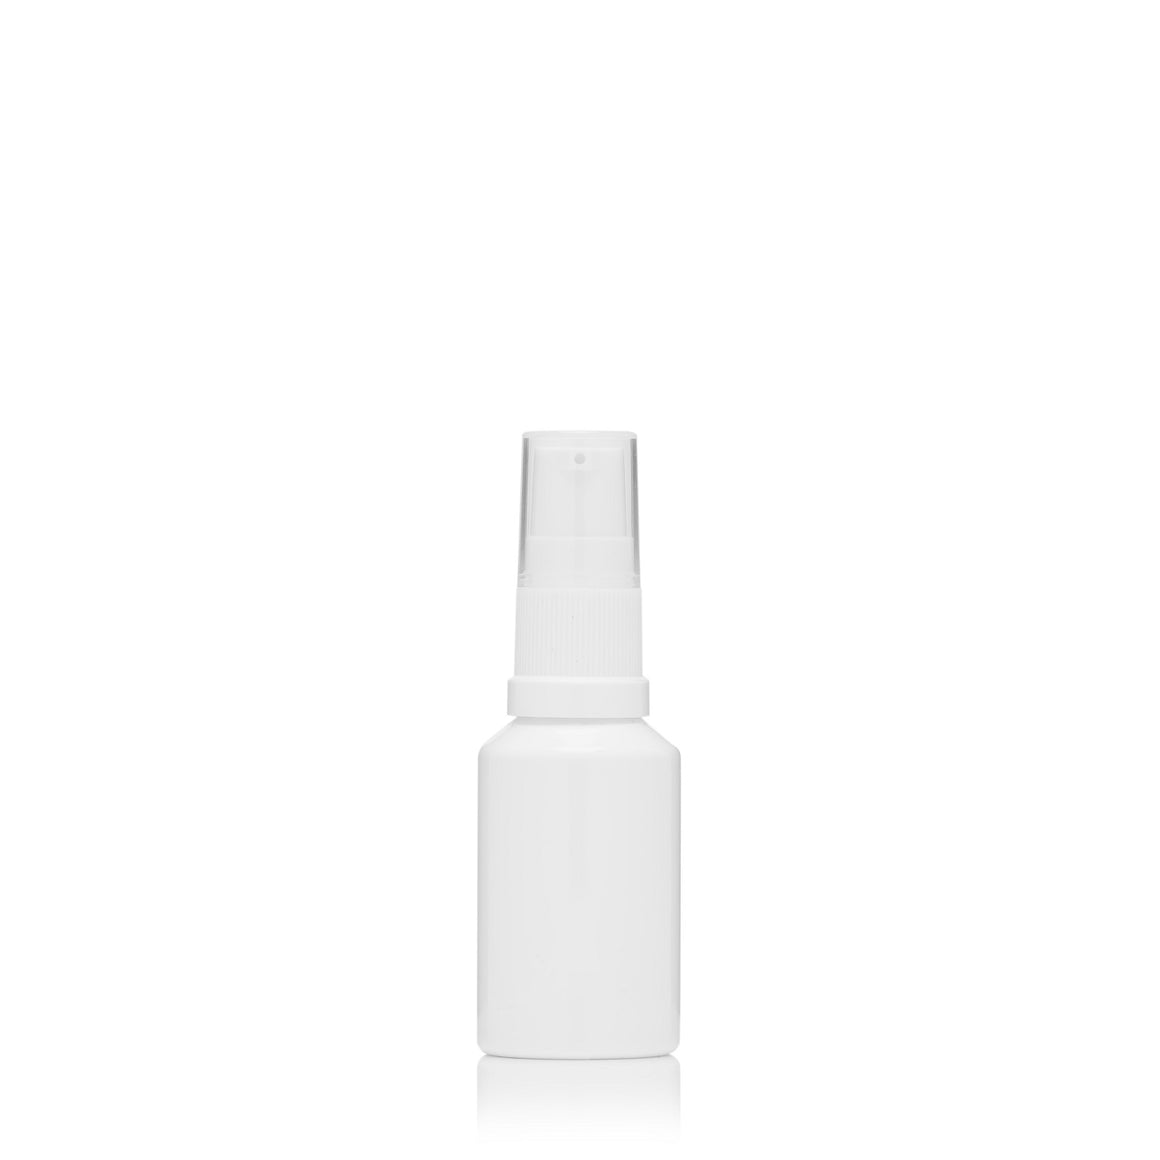 Active Hyaluronic Acid Serum - 30ml Pure